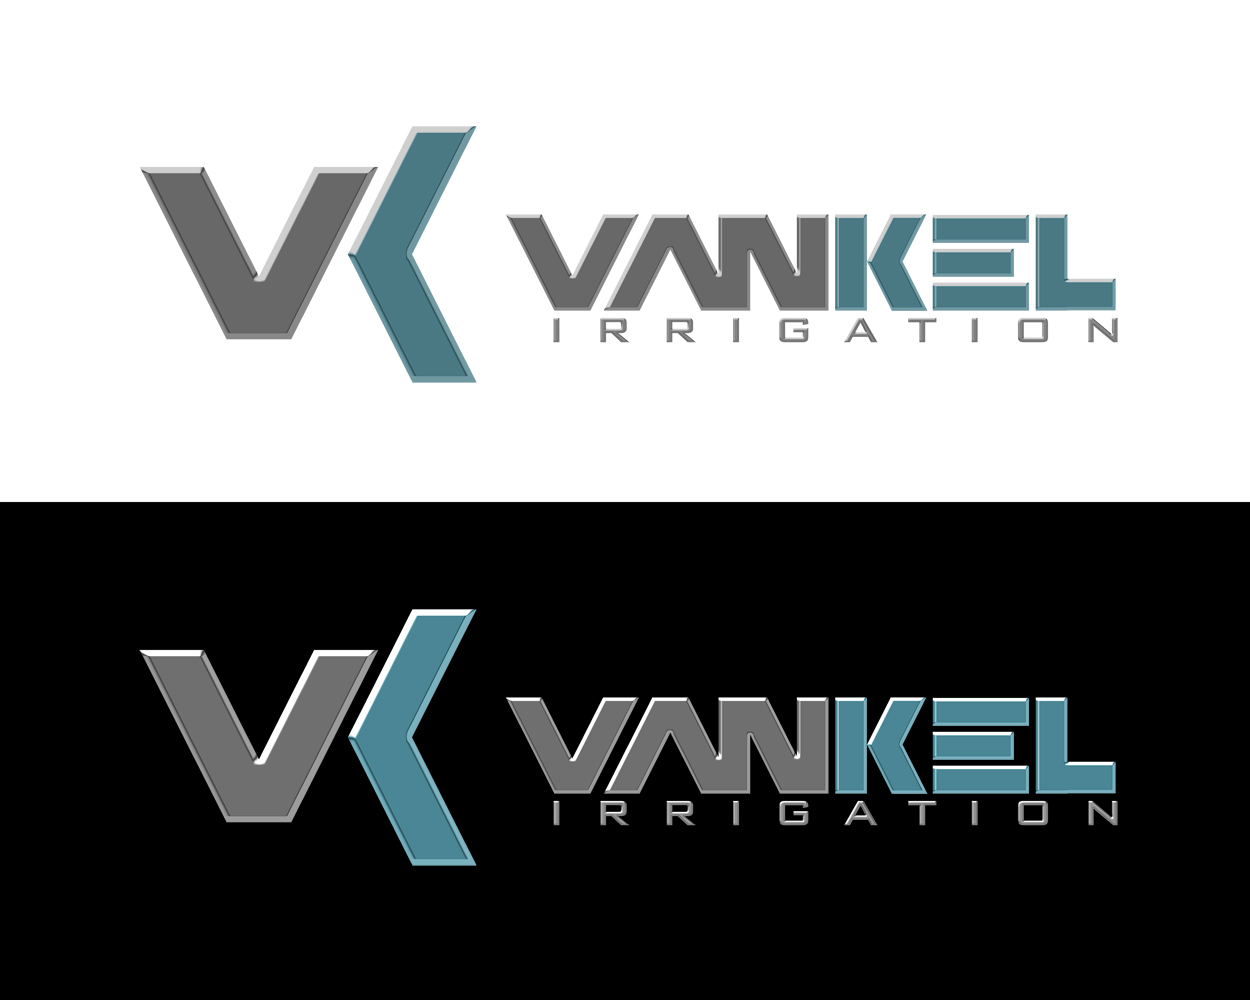 Logo Design by moidgreat - Entry No. 226 in the Logo Design Contest Van-Kel Irrigation Logo Design.